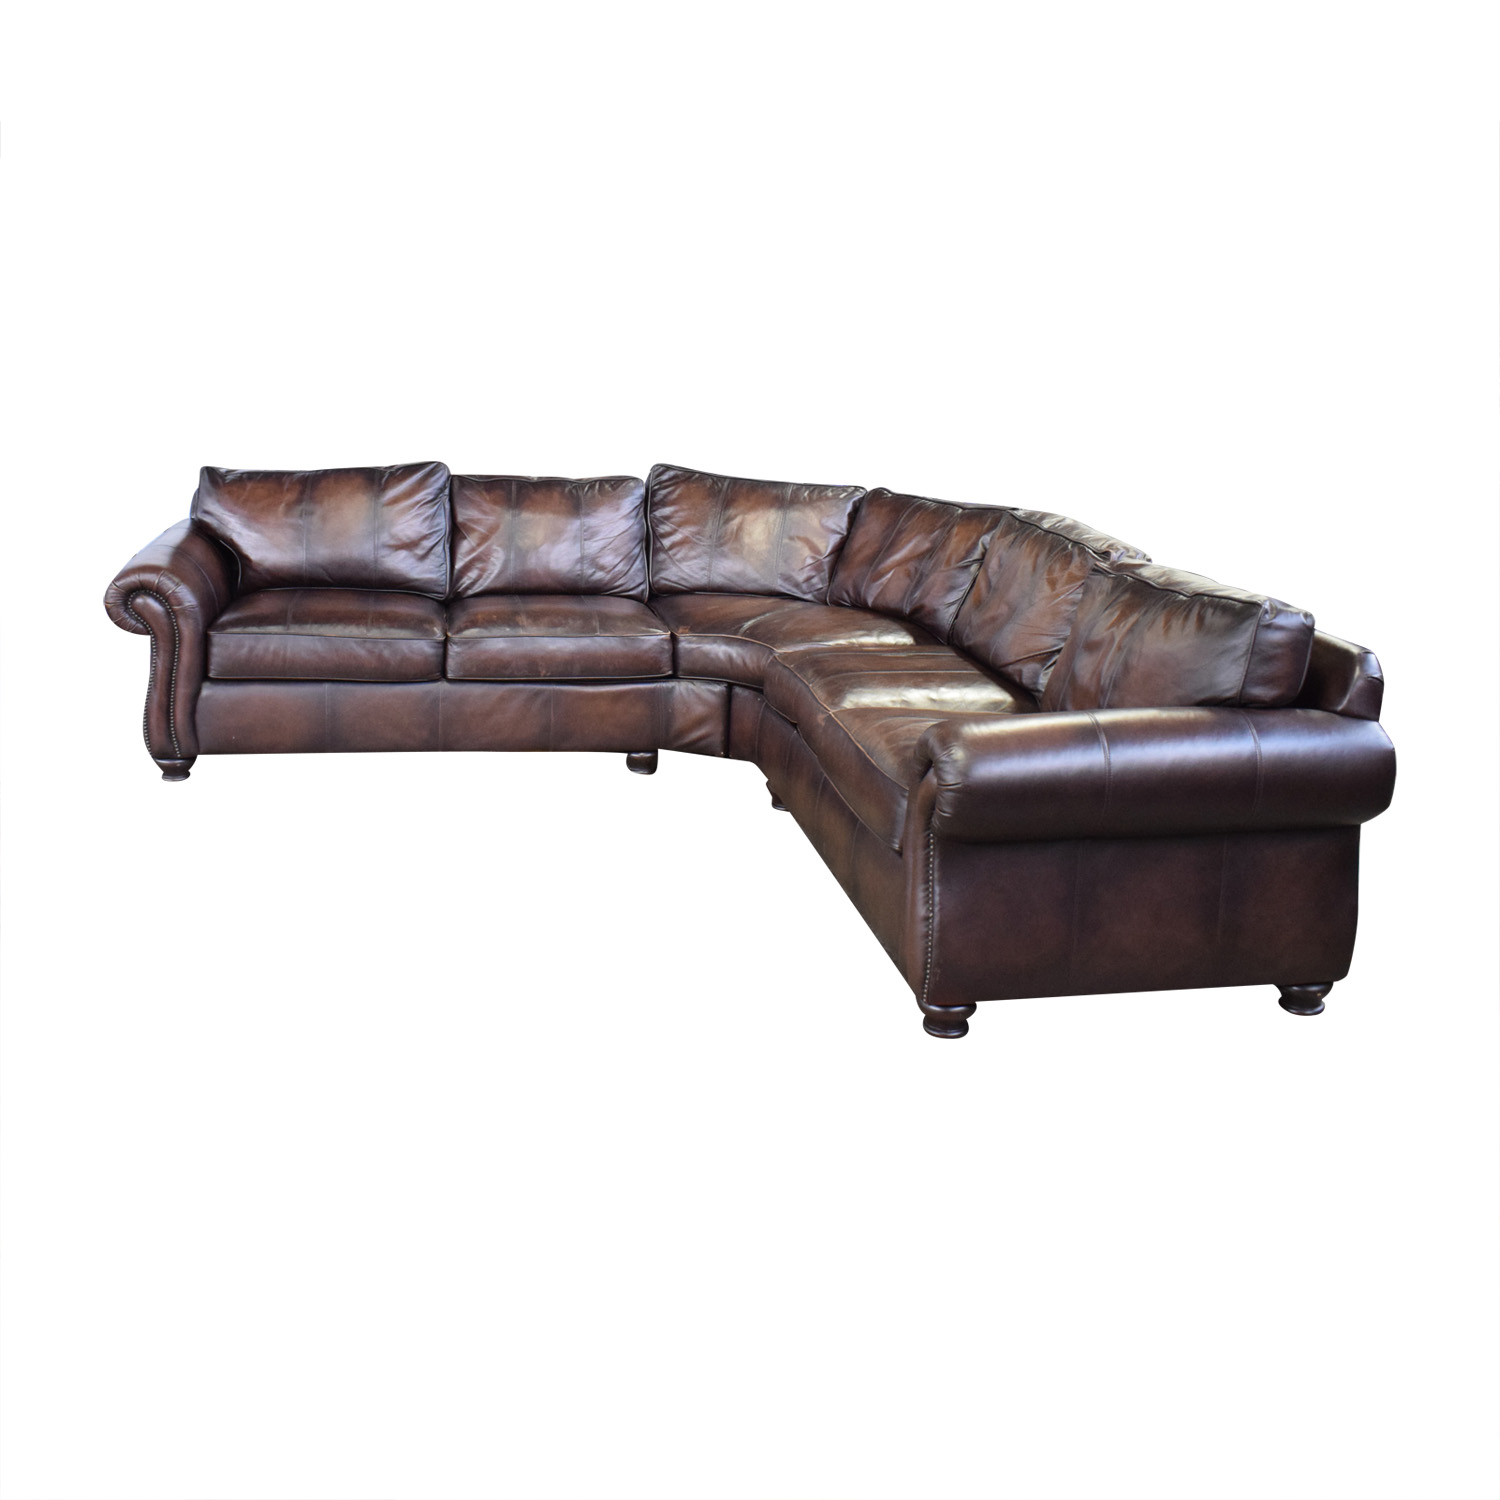 Marvelous 72 Off Bernhardt Bernhardt Brown Leather Sectional Sofas Interior Design Ideas Tzicisoteloinfo